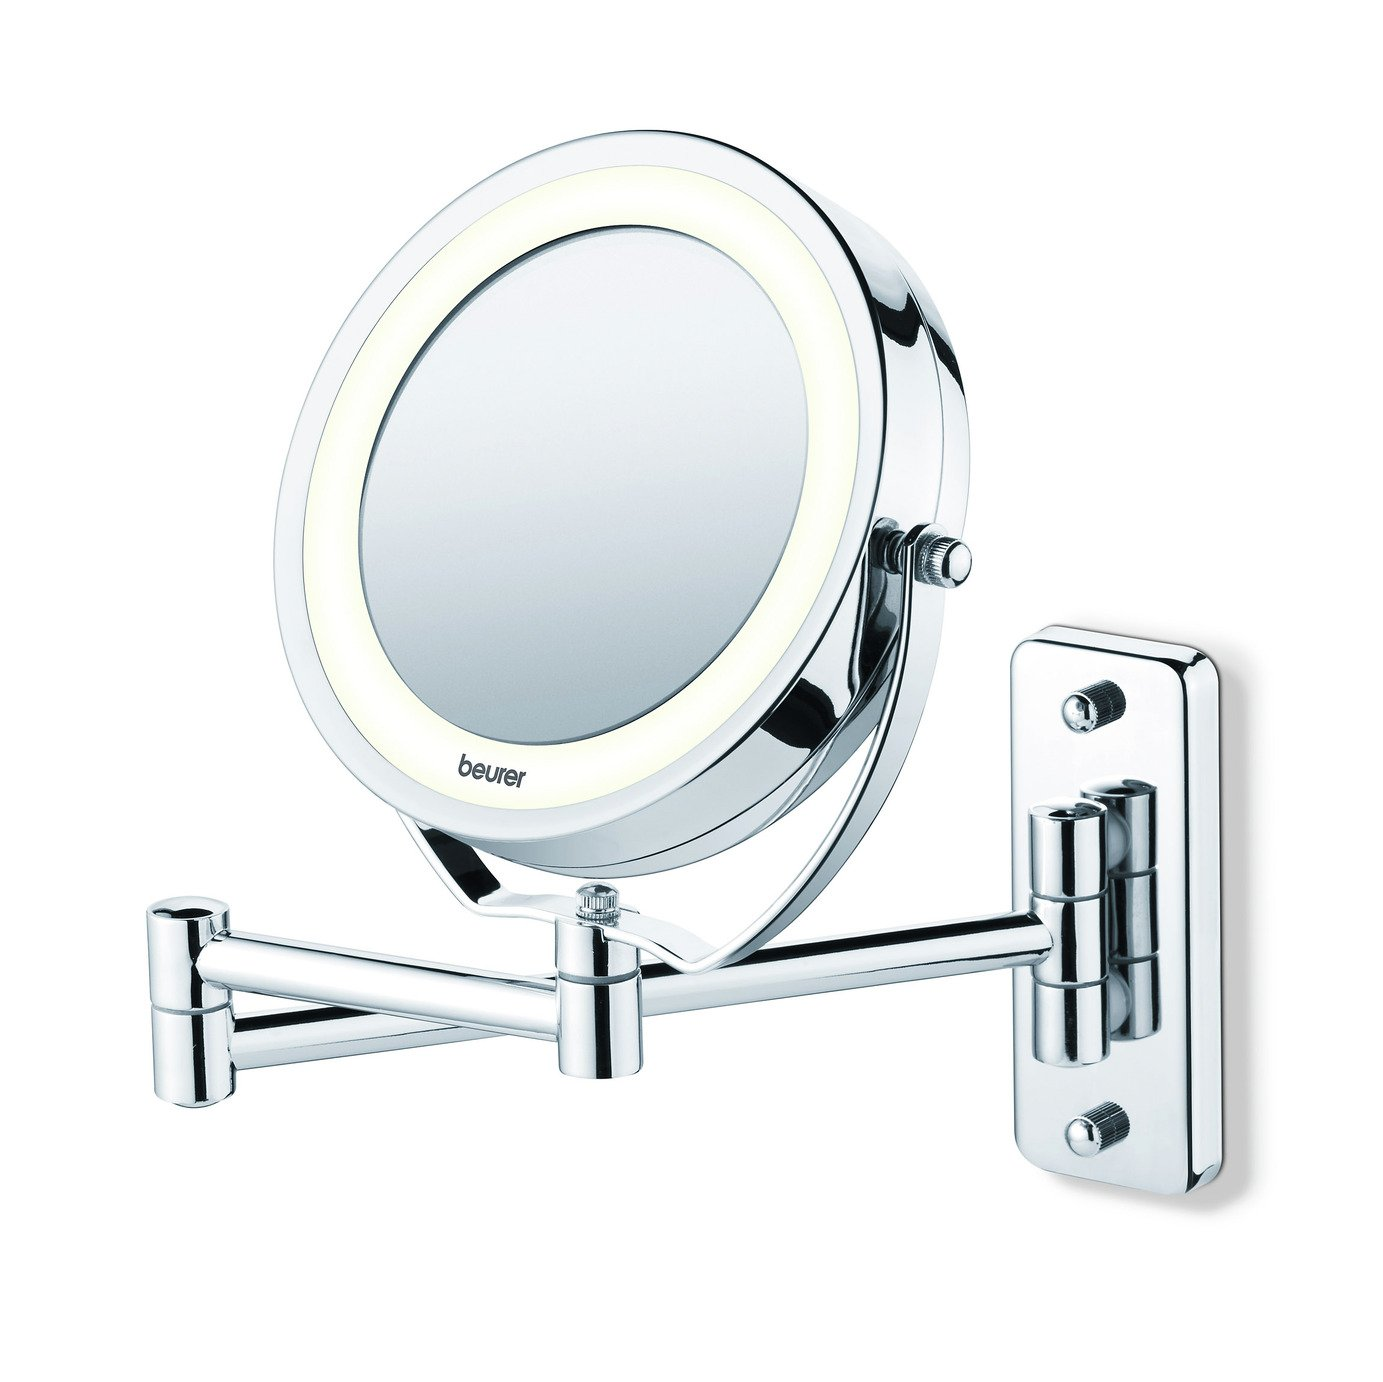 Image of Beurer BS59 Illuminated Wall Cosmetic Mirror.